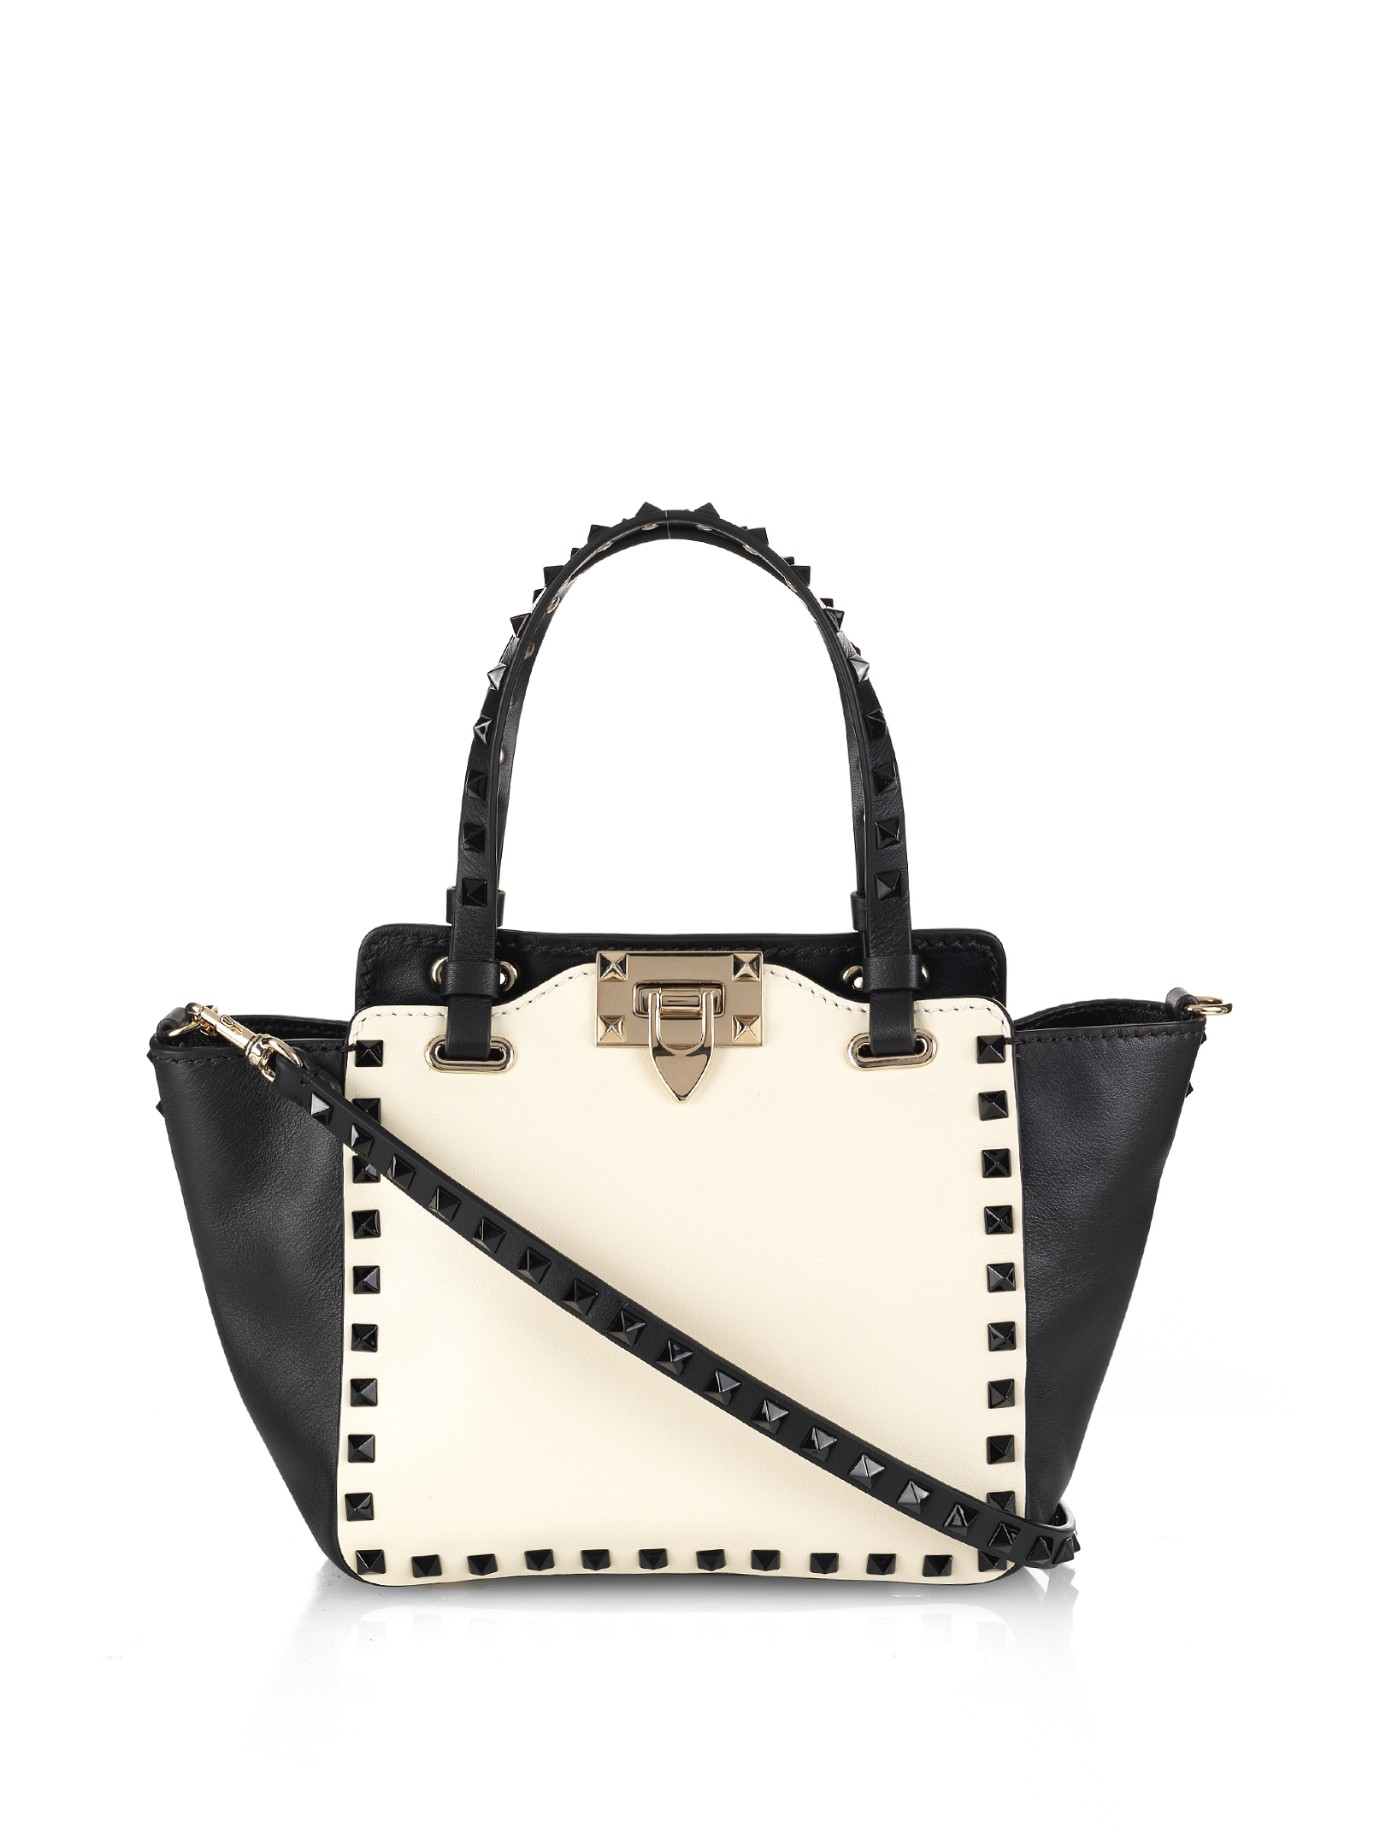 c8a5cc099 Gallery. Previously sold at: MATCHESFASHION.COM · Women's Valentino  Rockstud Bags